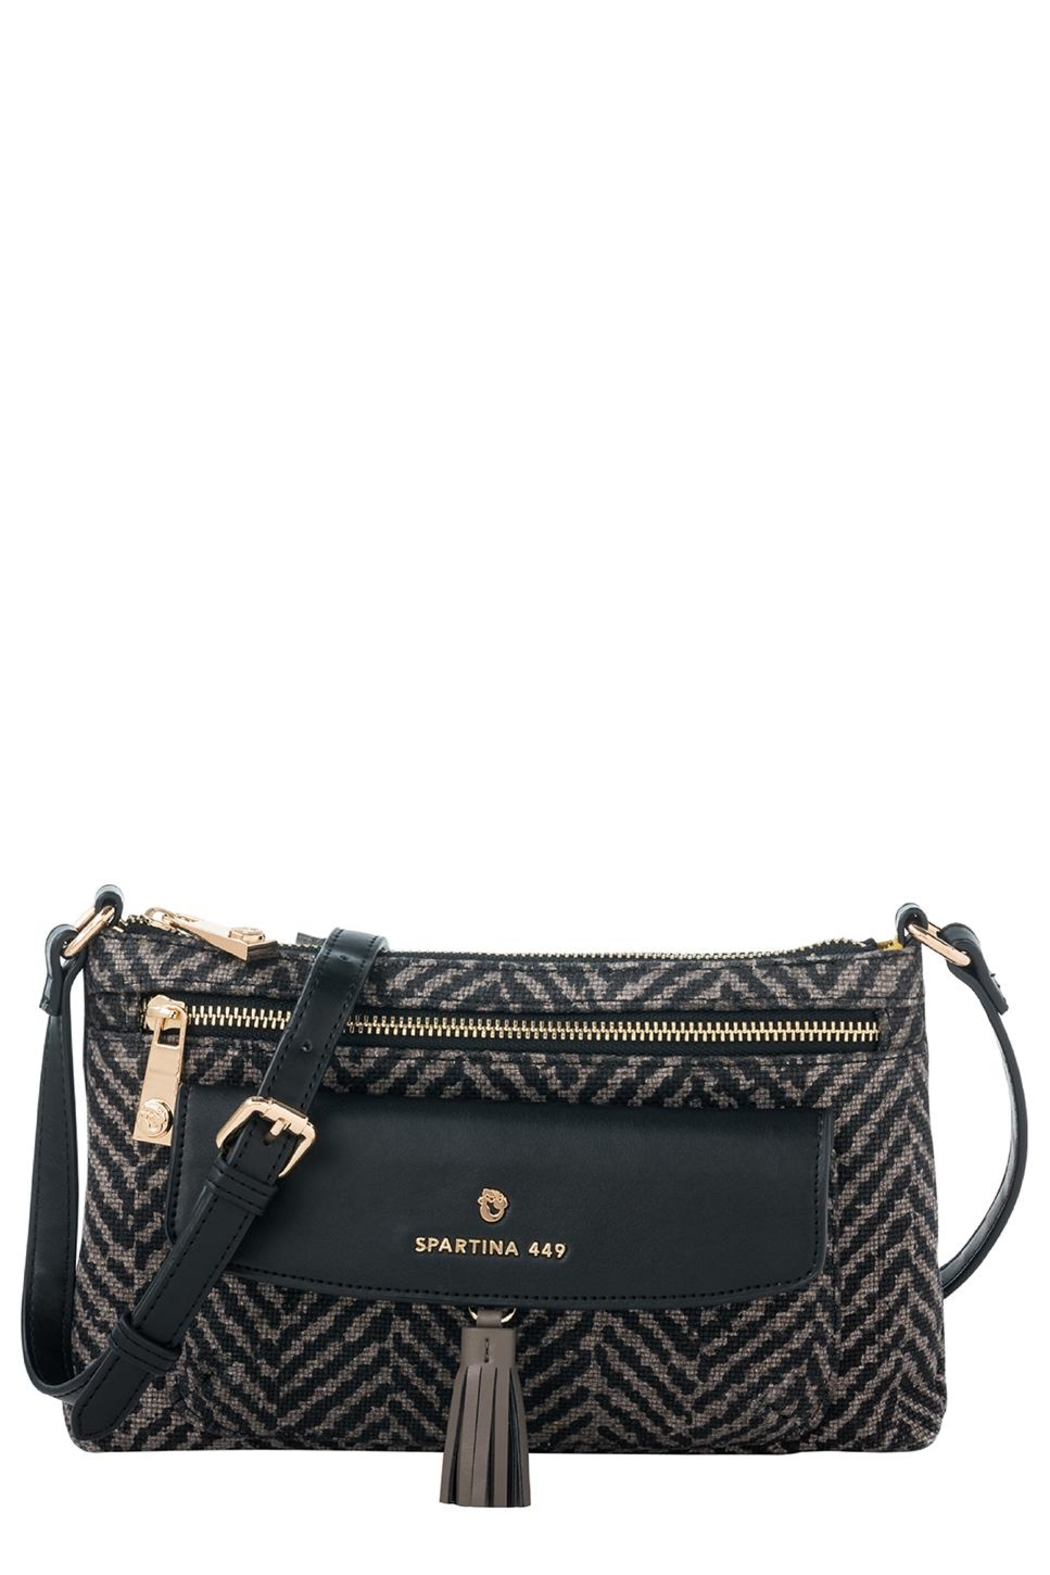 Spartina 449 Lorelei Phone Crossbody - Main Image